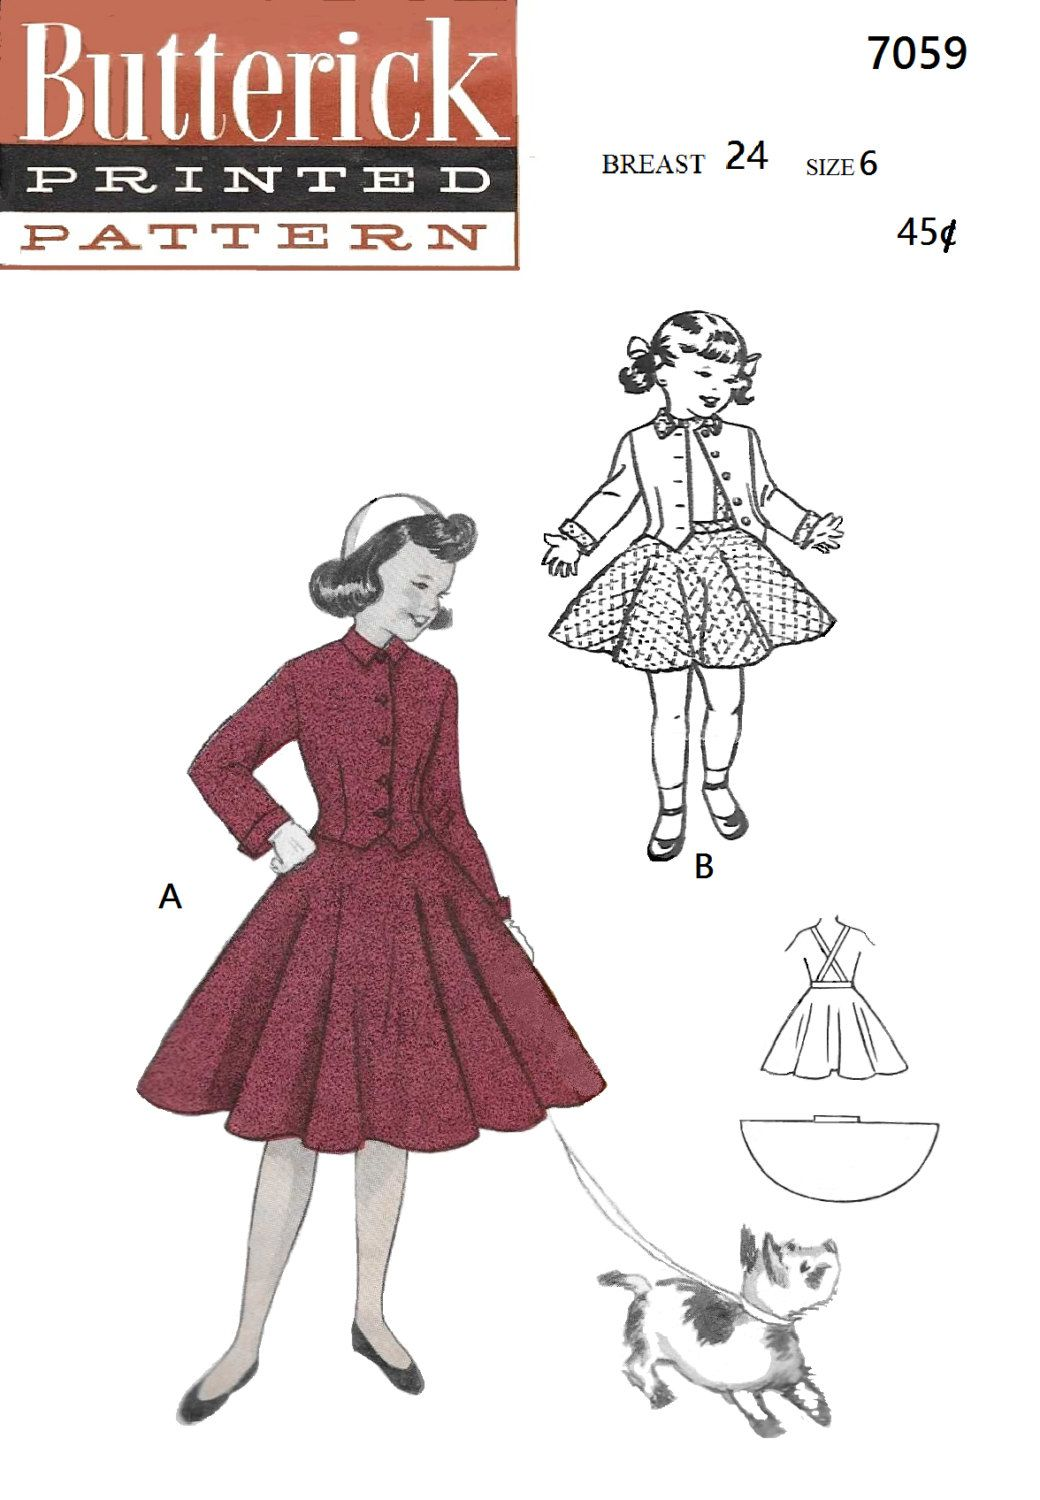 Butterick 7059 girls 50s fitted suit full circle skirt sewing butterick 7059 girls 50s fitted suit full circle skirt sewing pattern size 6 jeuxipadfo Gallery